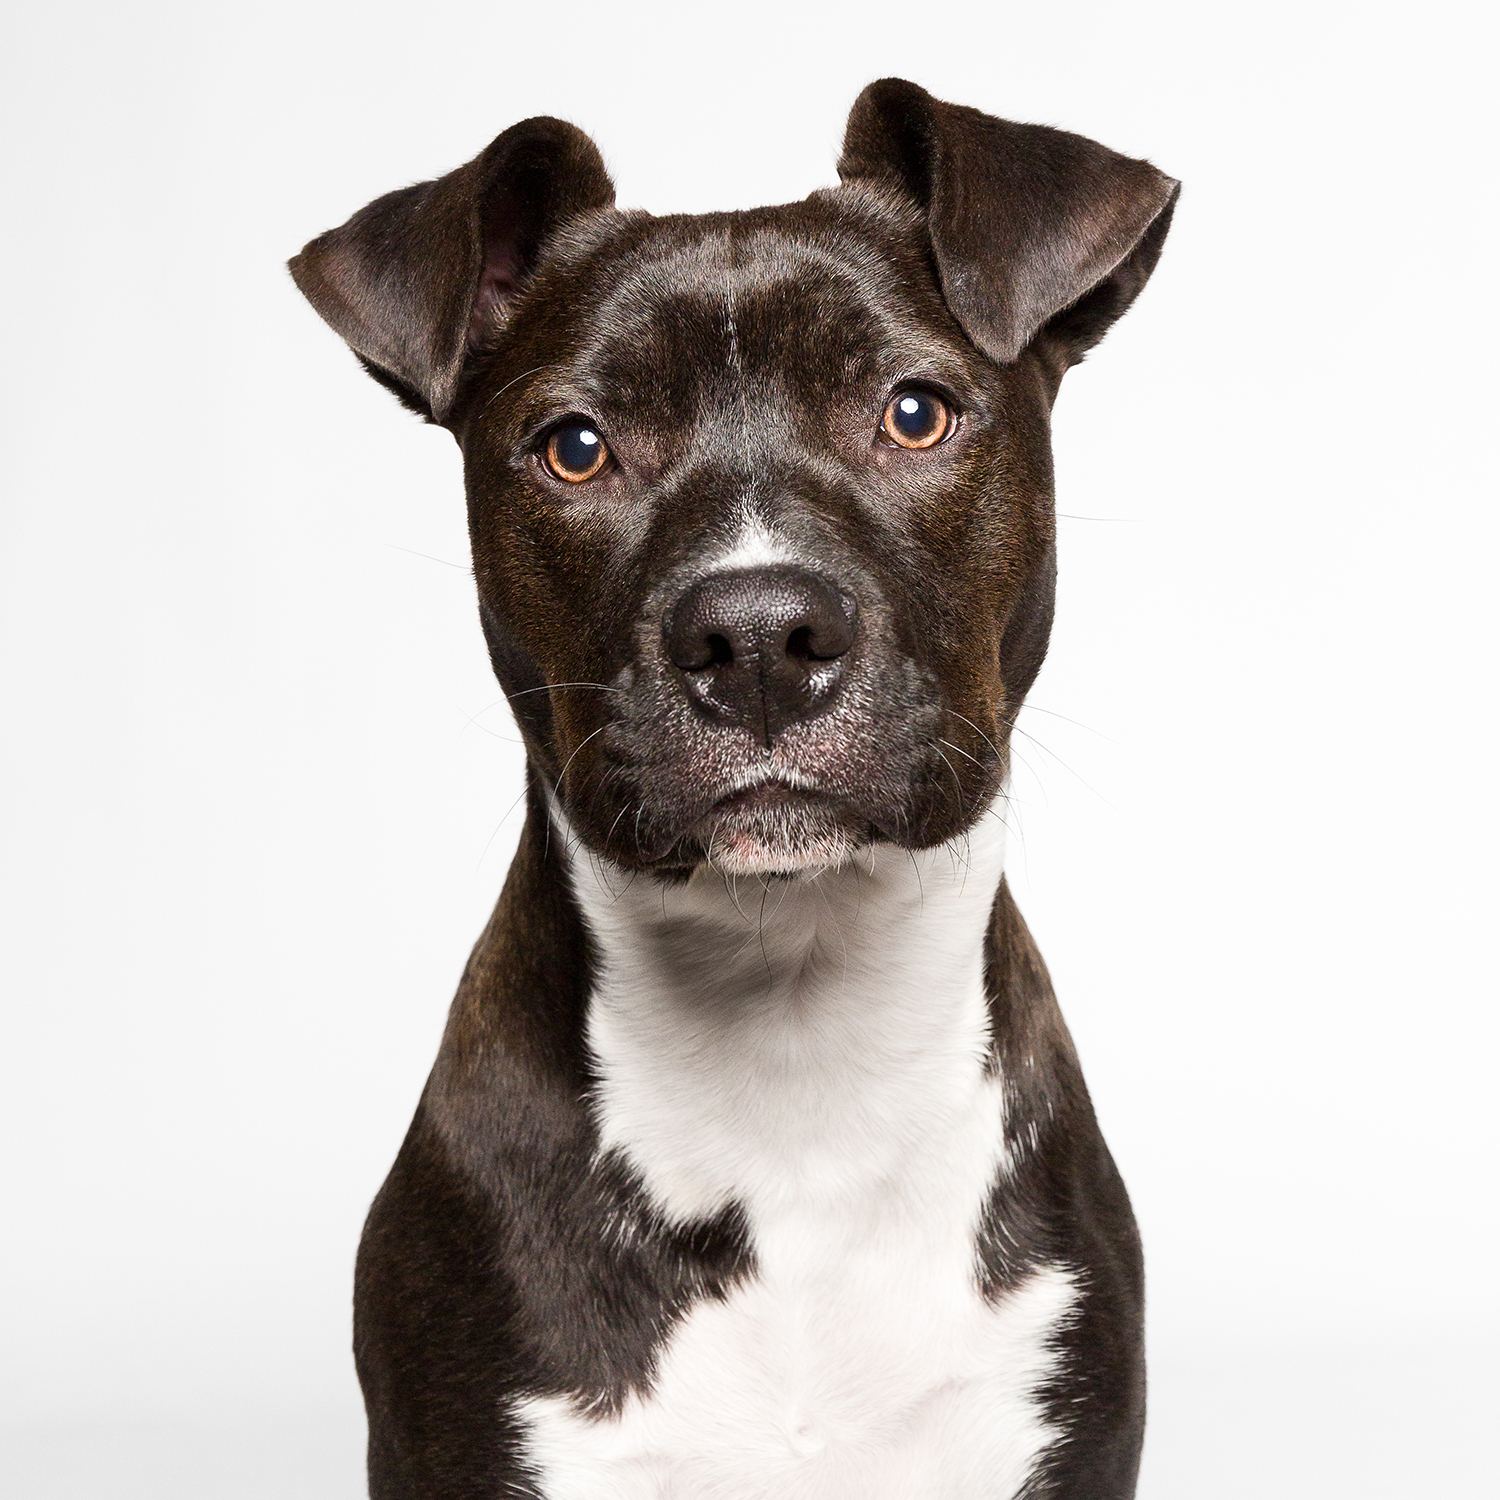 Portrait of Pocket Pittie by Chicago dog photographer